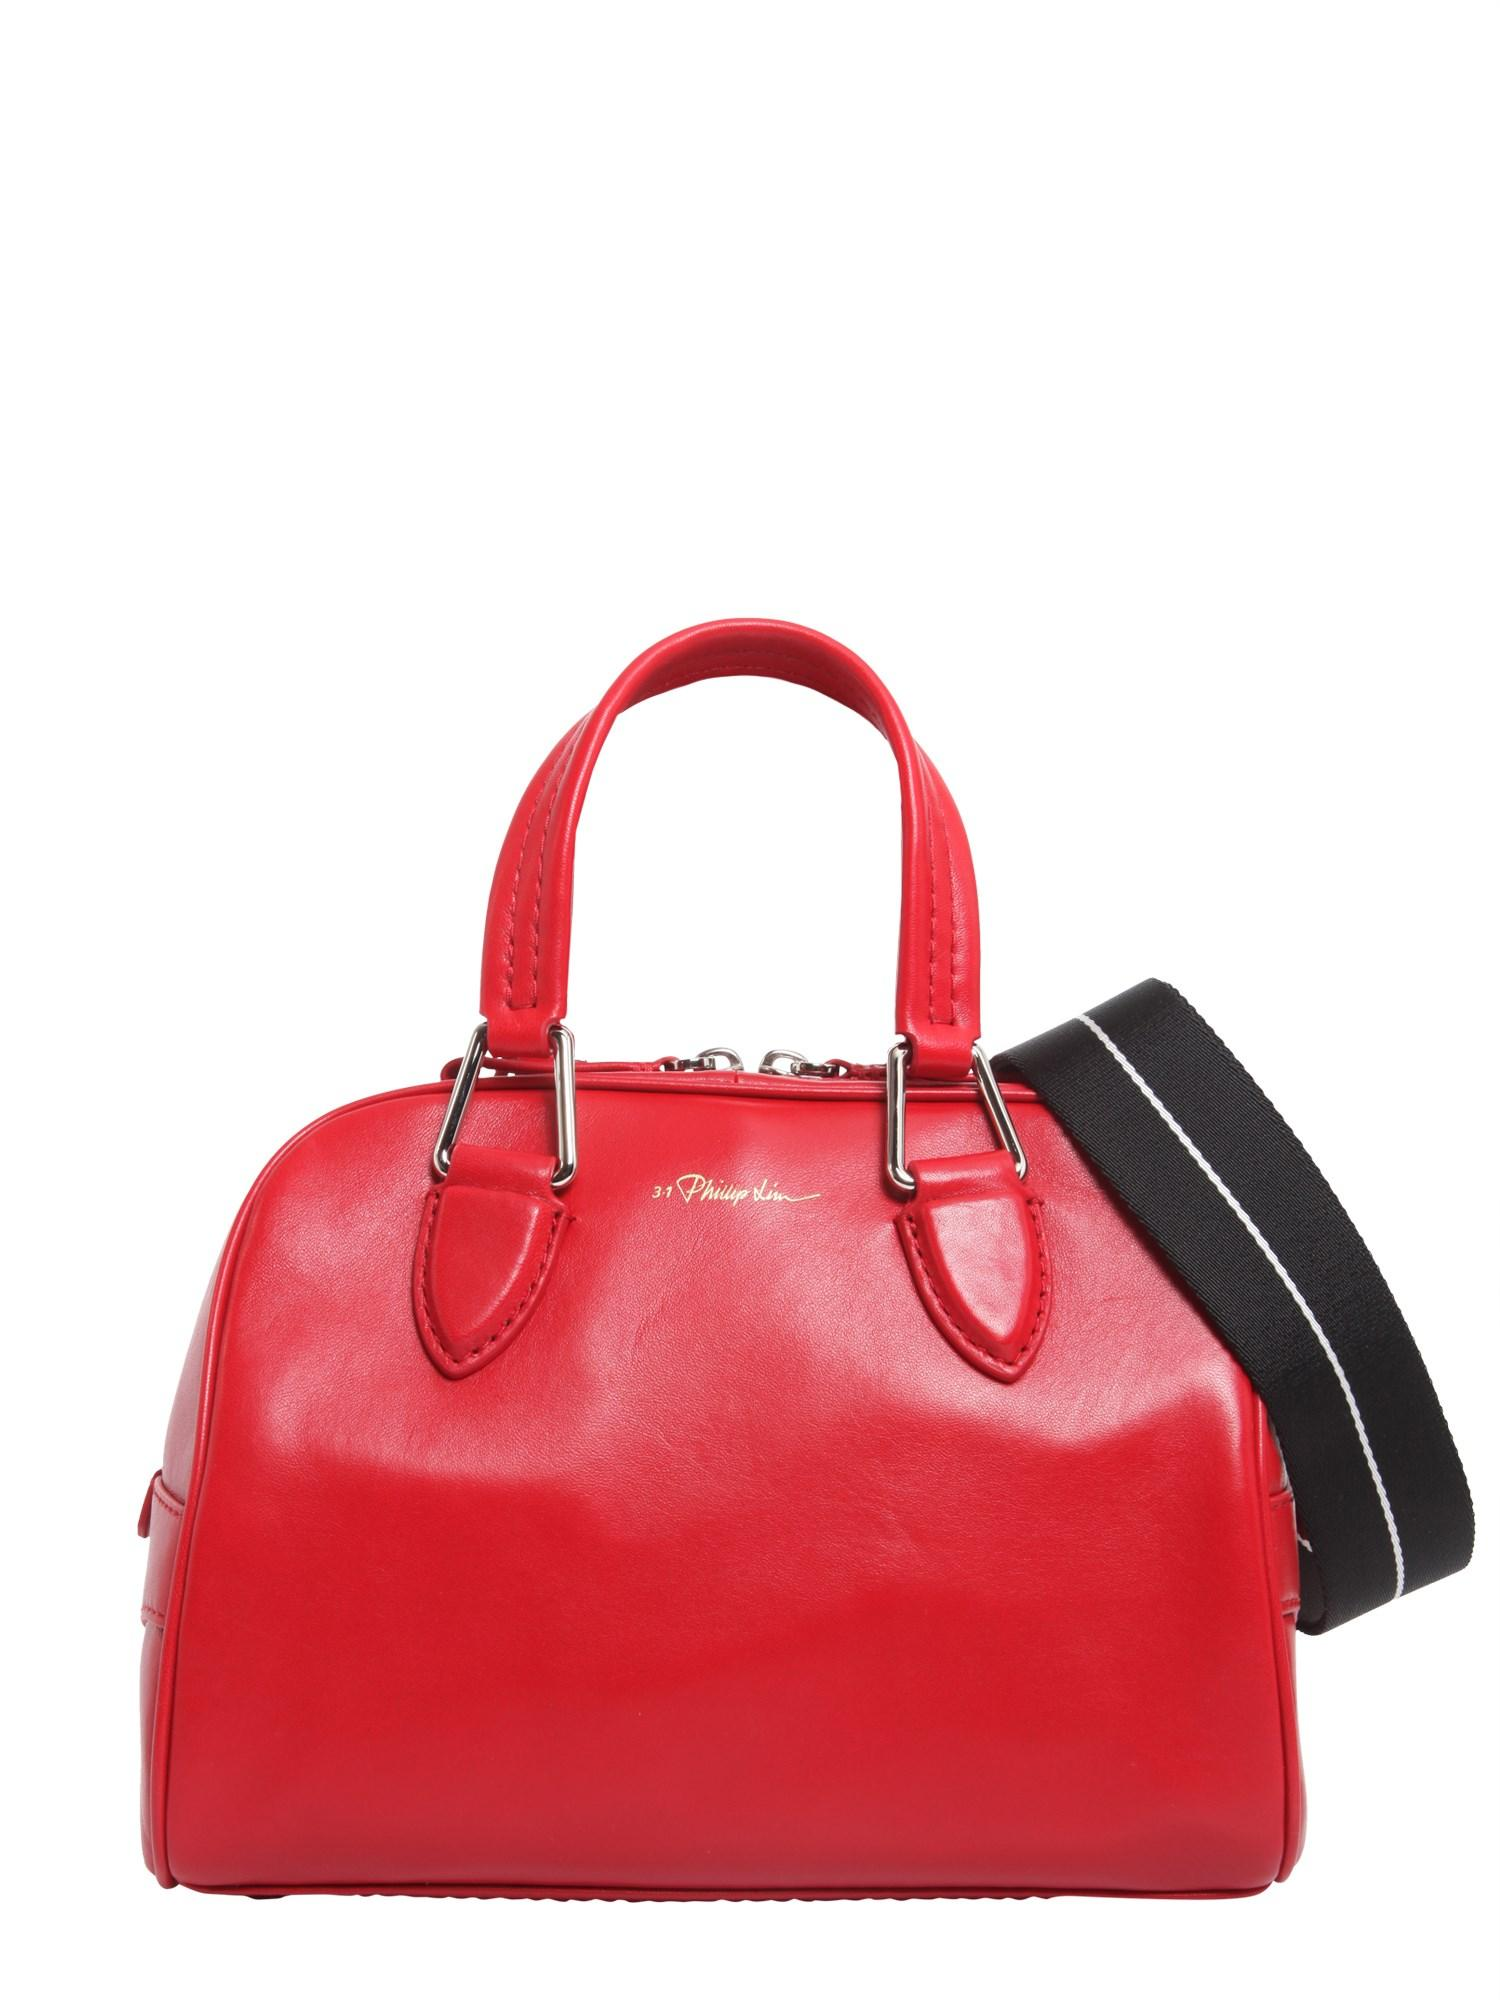 01a7537e46 3.1 Phillip Lim Borsa Bowling Small Ray In Pelle in Red - Save 41 ...